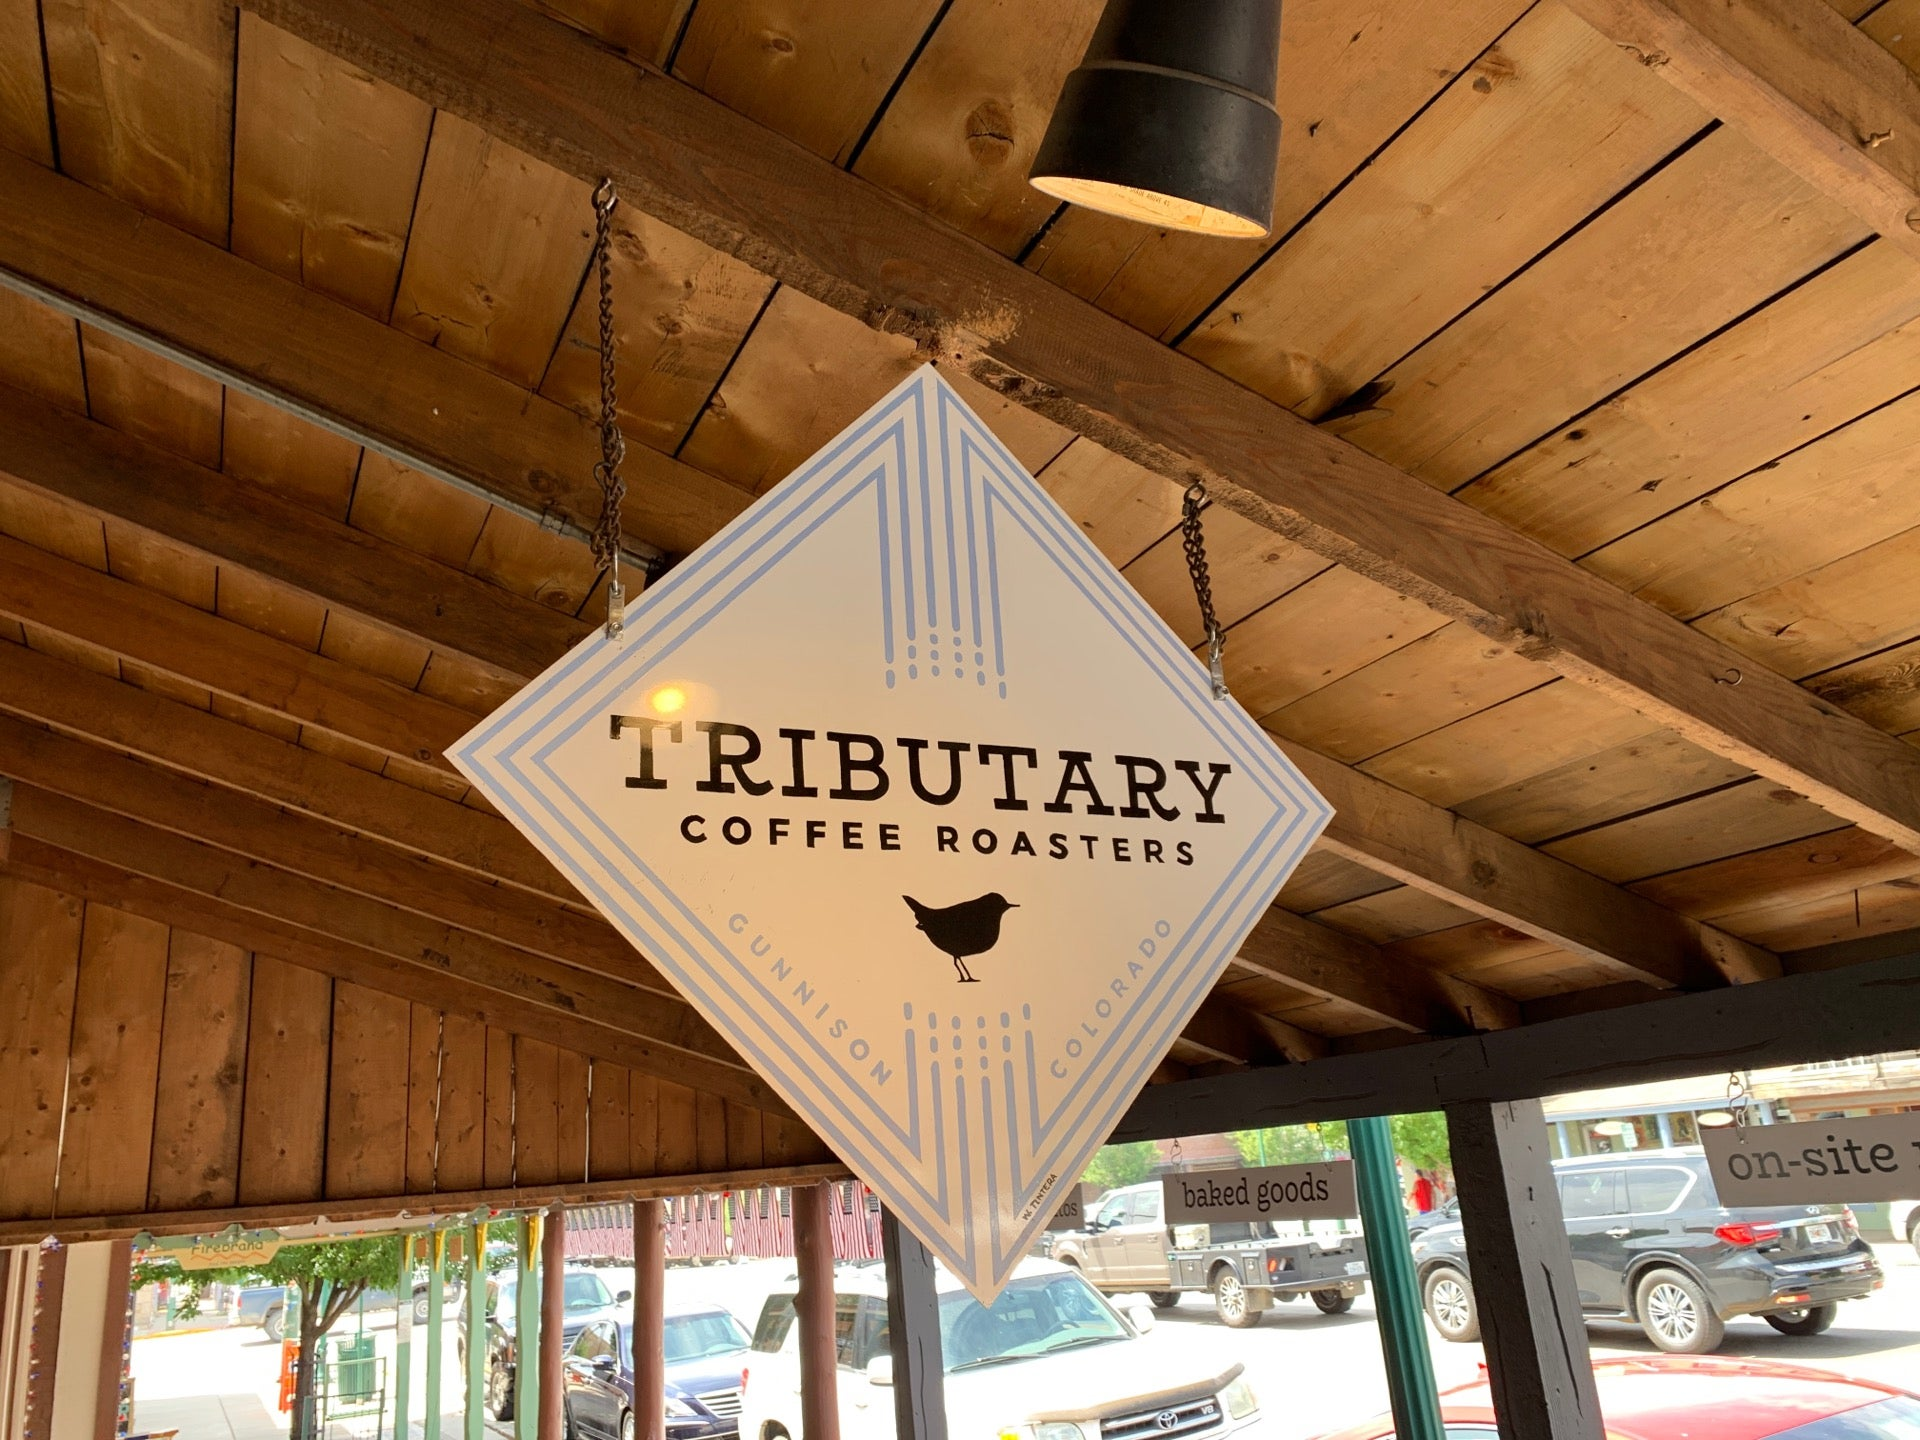 Checked in at Tributary Roasters